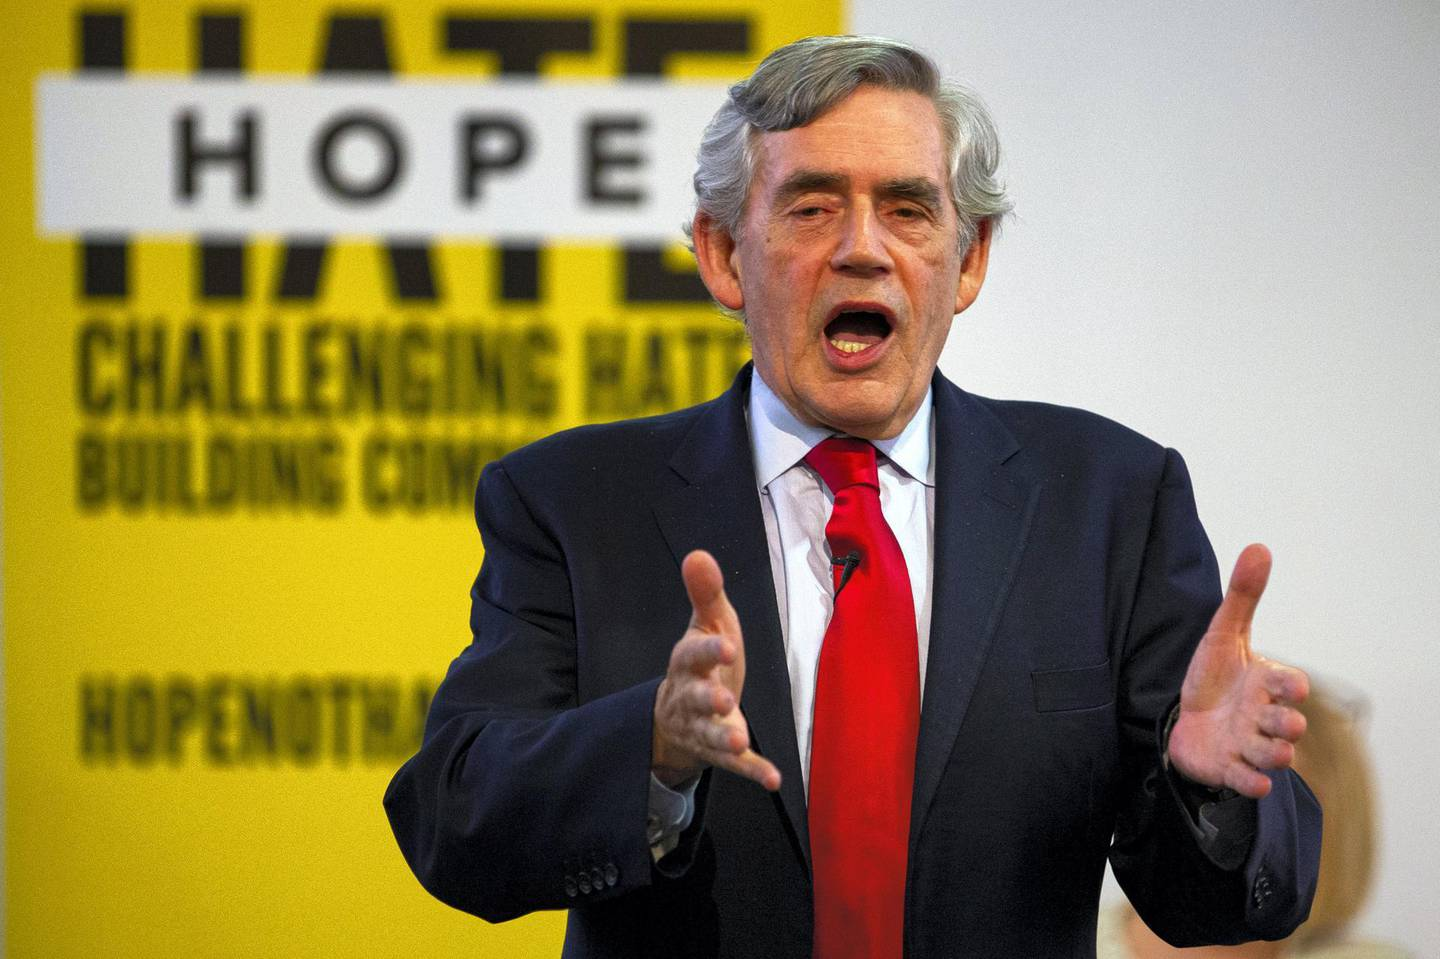 """GLASGOW, SCOTLAND - SEPTEMBER 09: Former Prime Minister Gordon Brown speaks at a """"No to No-Deal"""" rally at Gorbals Parish Church on September 9, 2019 in Glasgow, Scotland. (Photo by Duncan McGlynn/Getty Images)"""